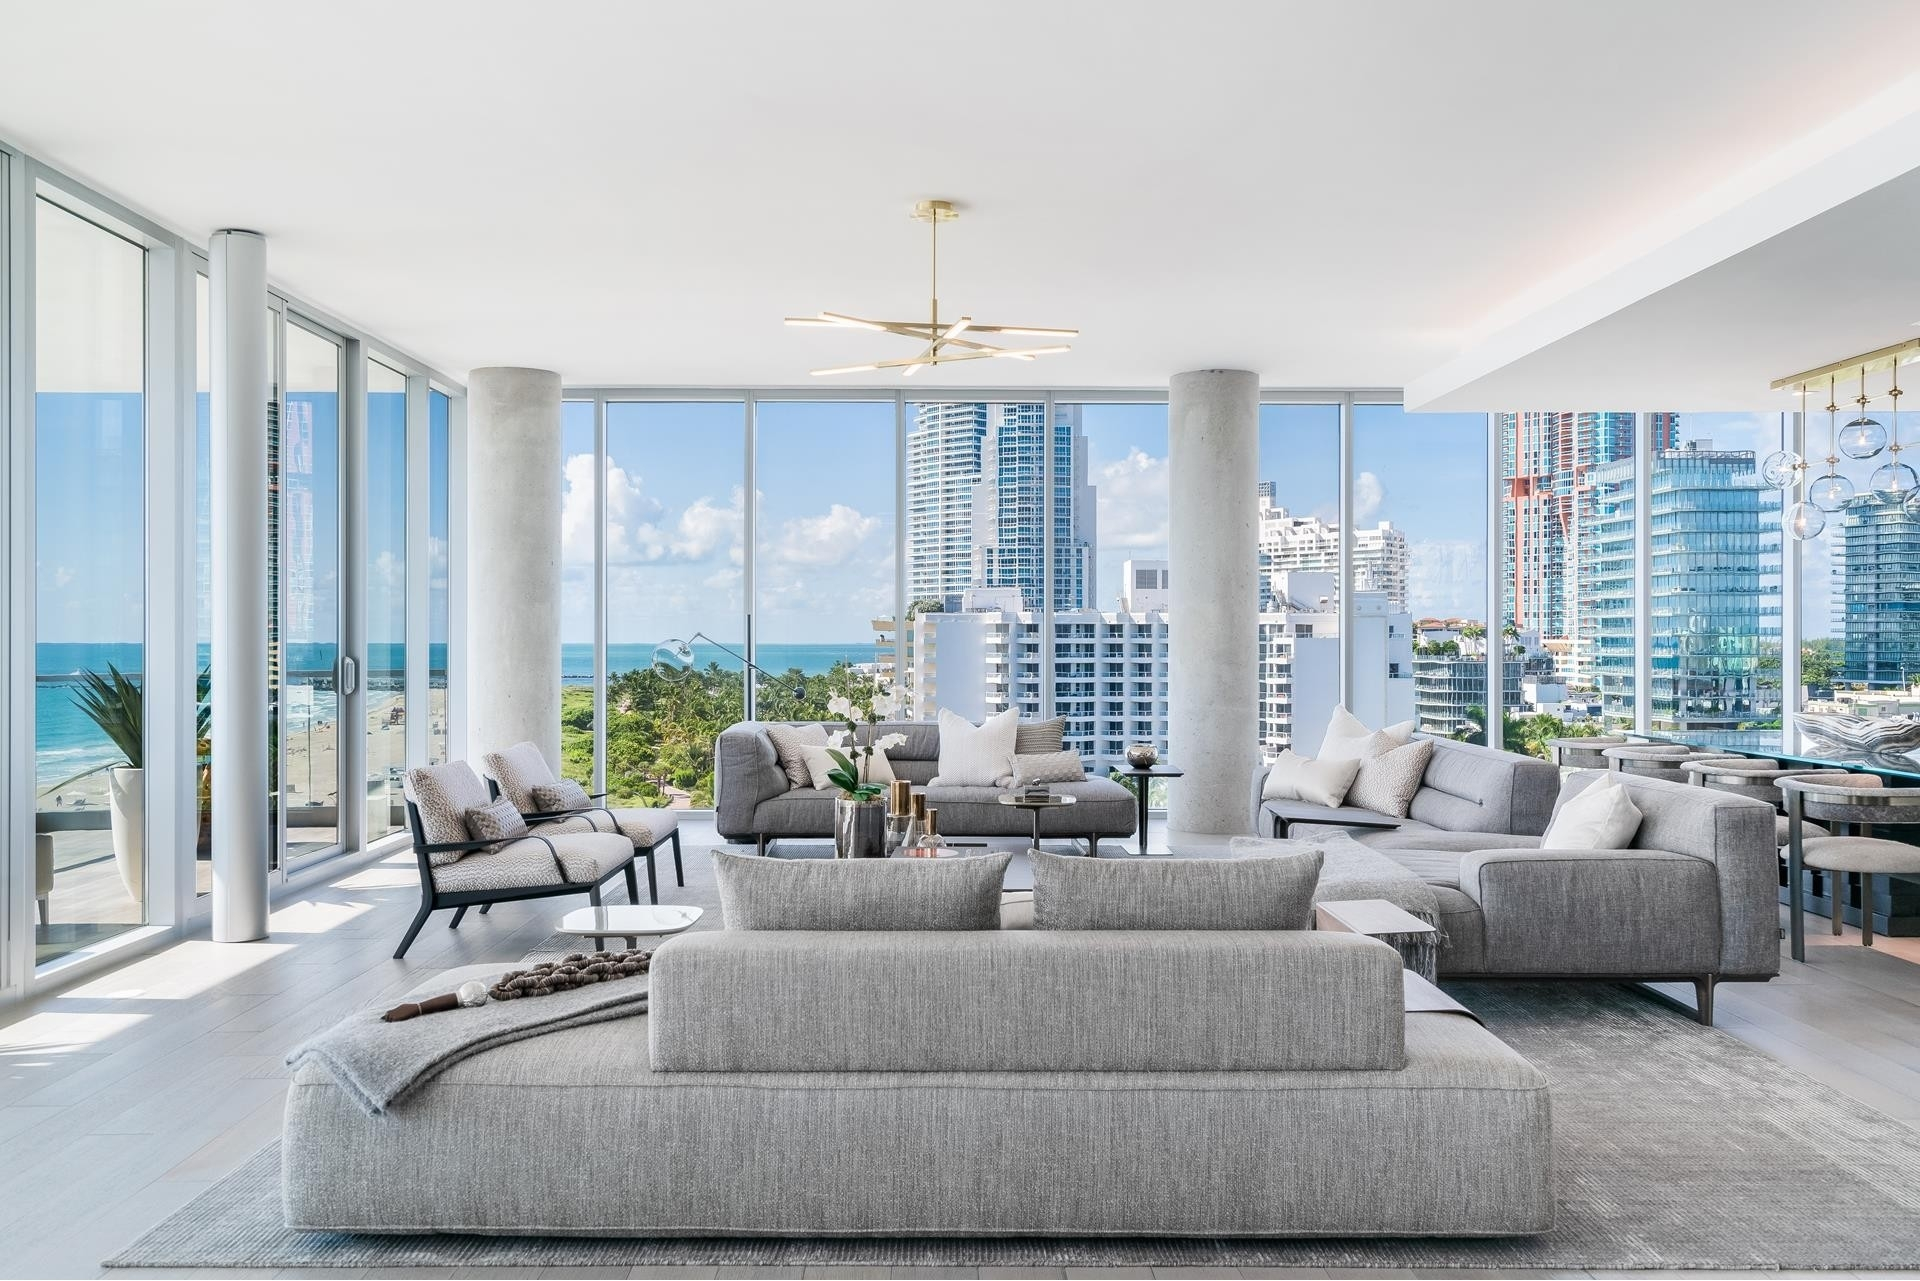 Condominium at 321 Ocean Drive , PH Miami Beach